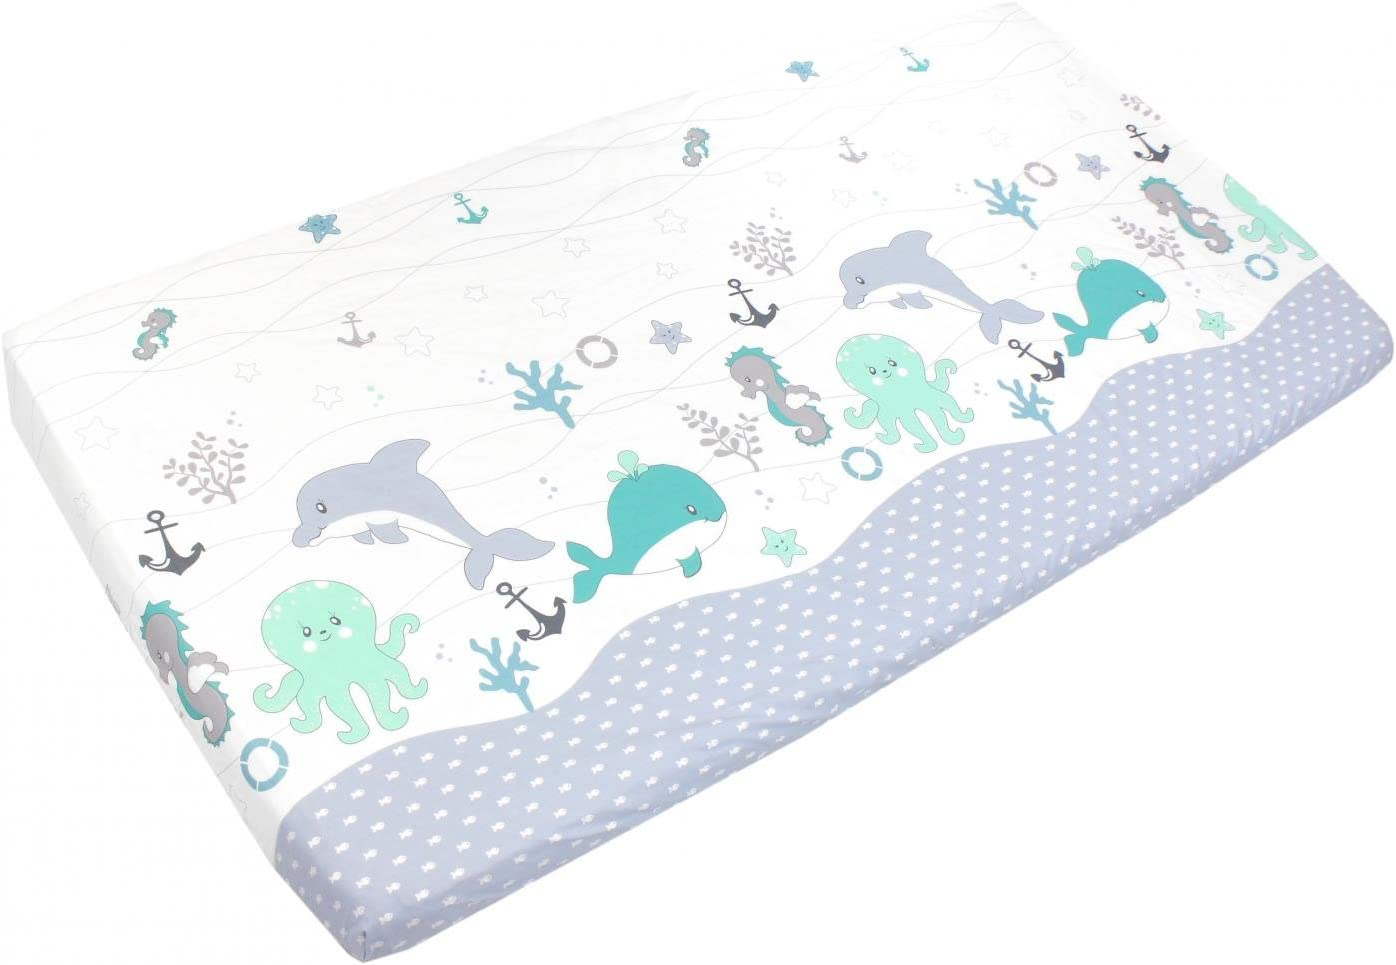 70 x 140 cm Bird Green TupTam Baby Bed Crib Cot Fitted Sheets with Printed Designs